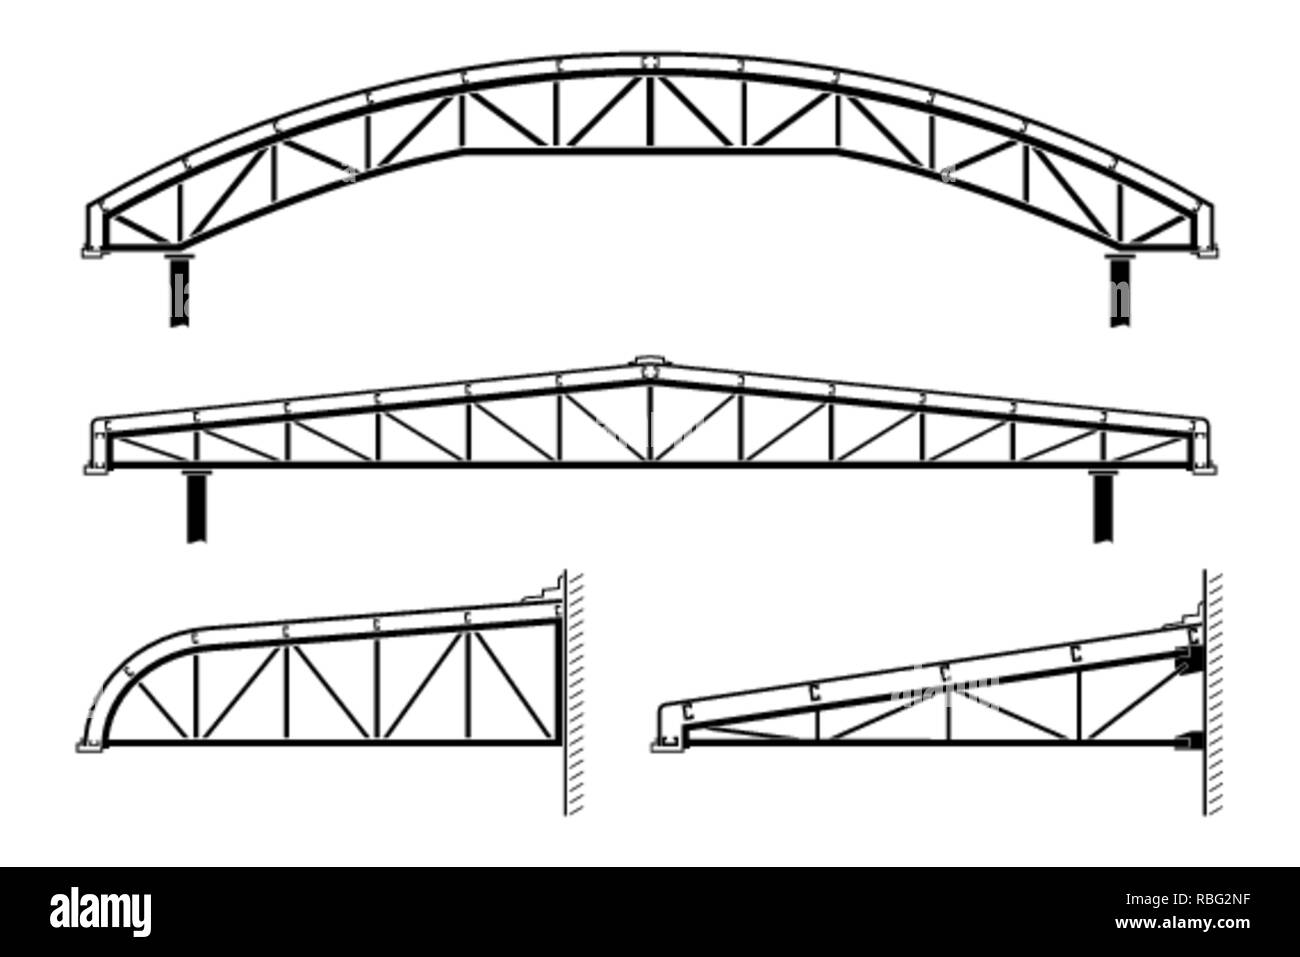 hight resolution of roofing building steel frame roof truss collection vector illustration stock image